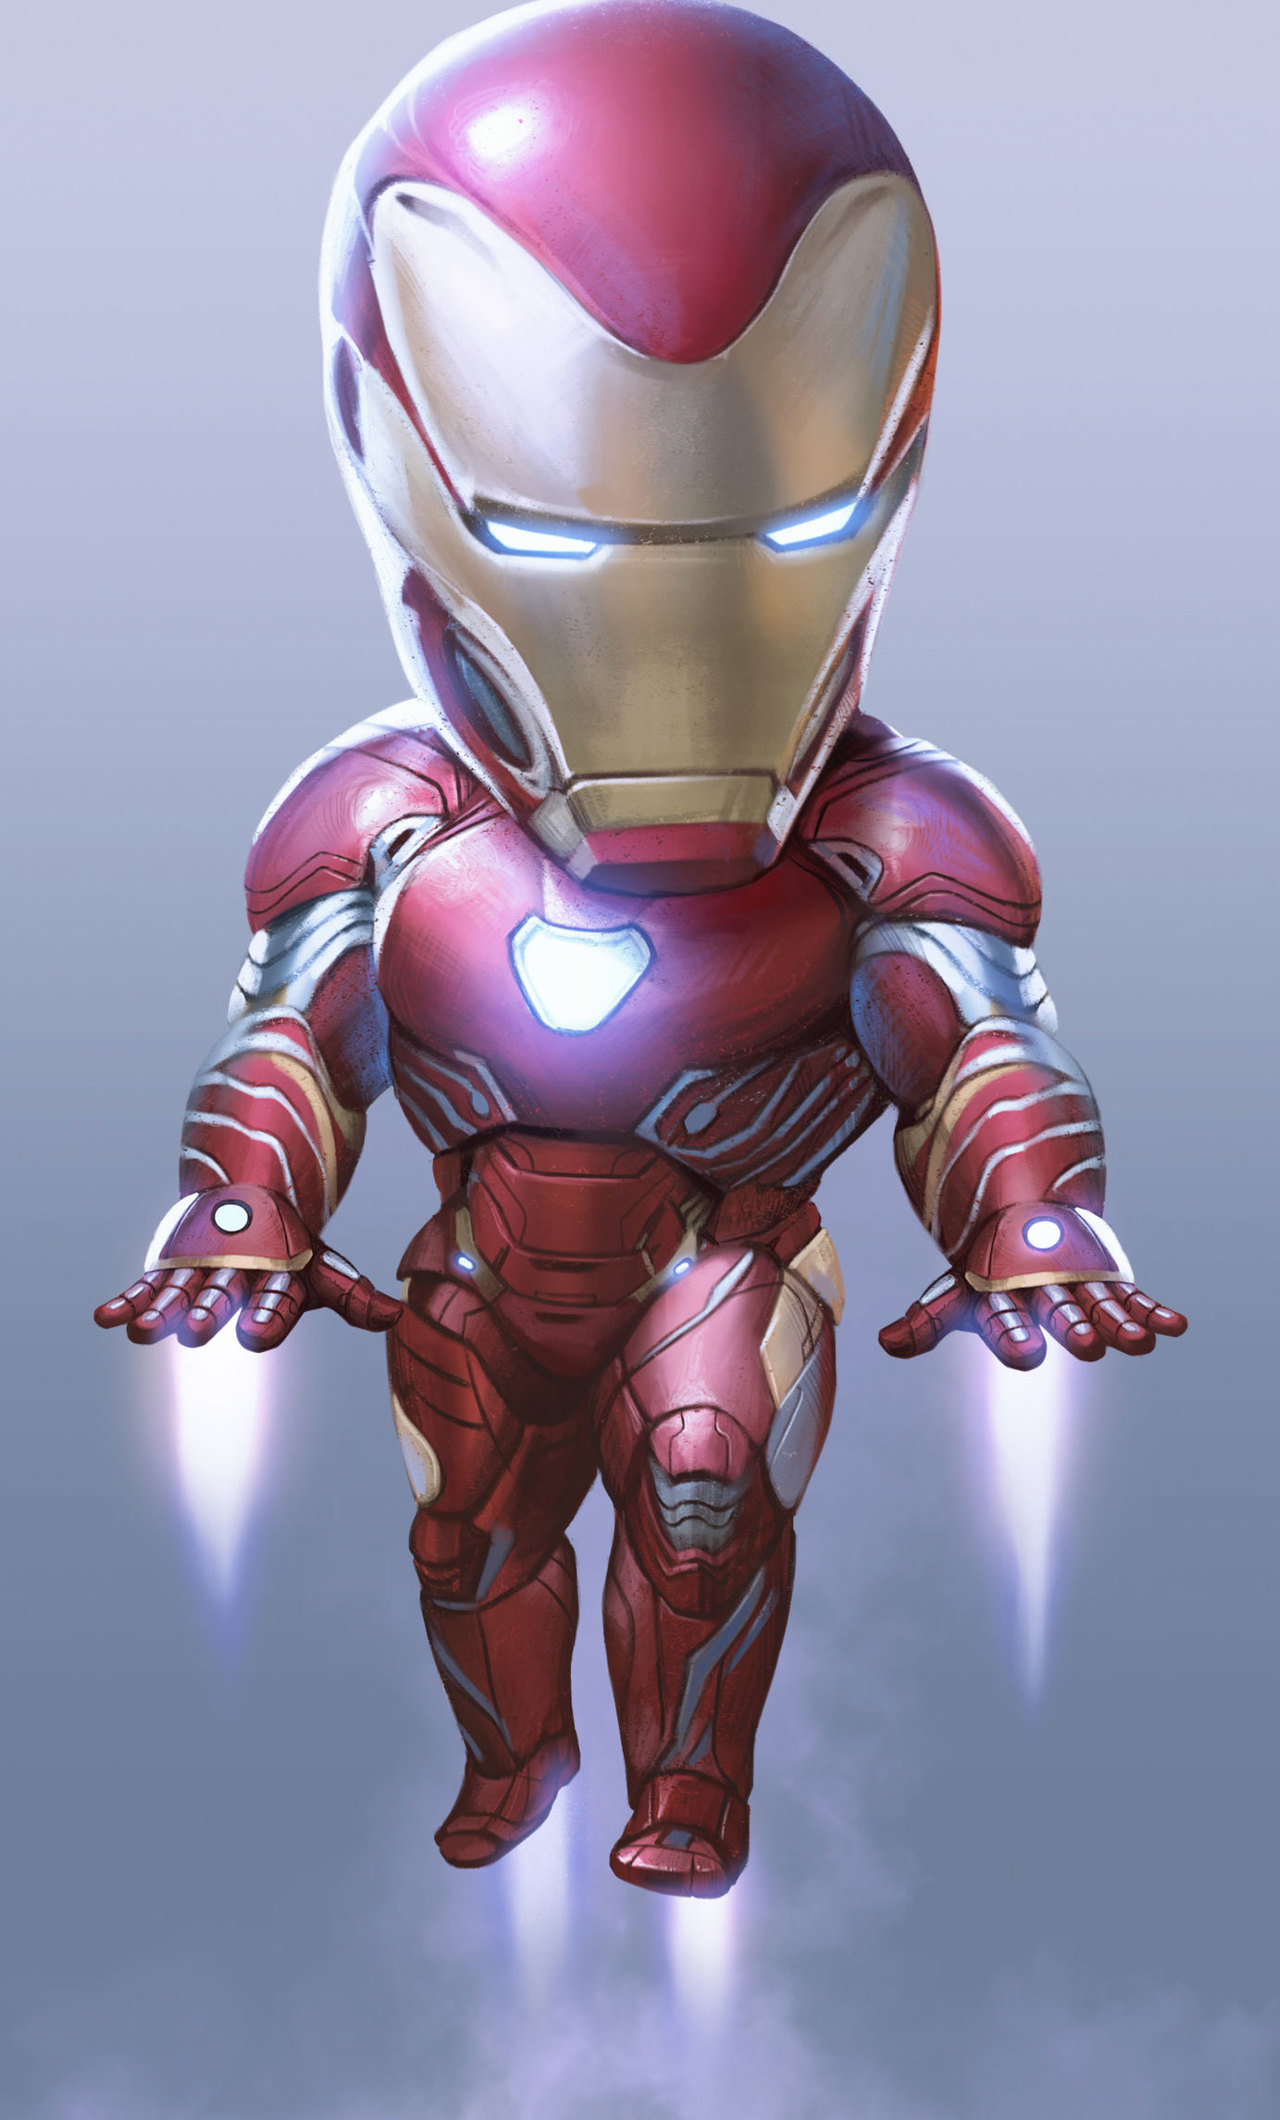 Iron Man Wallpaper For Iphone 6 Ironman Infinity War Hd